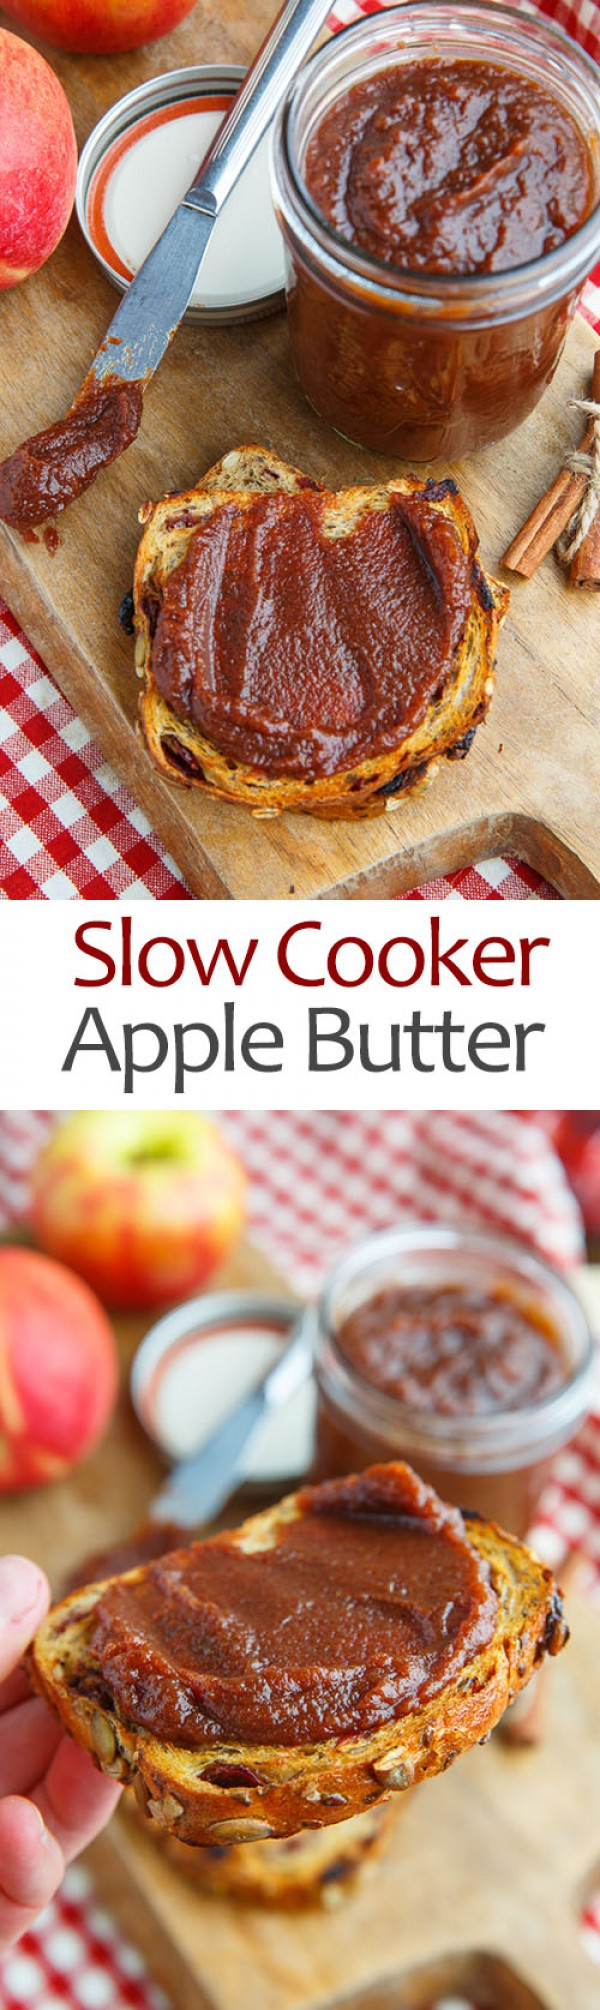 Get the recipe for Slow Cooker Apple Butter @recipes_to_go